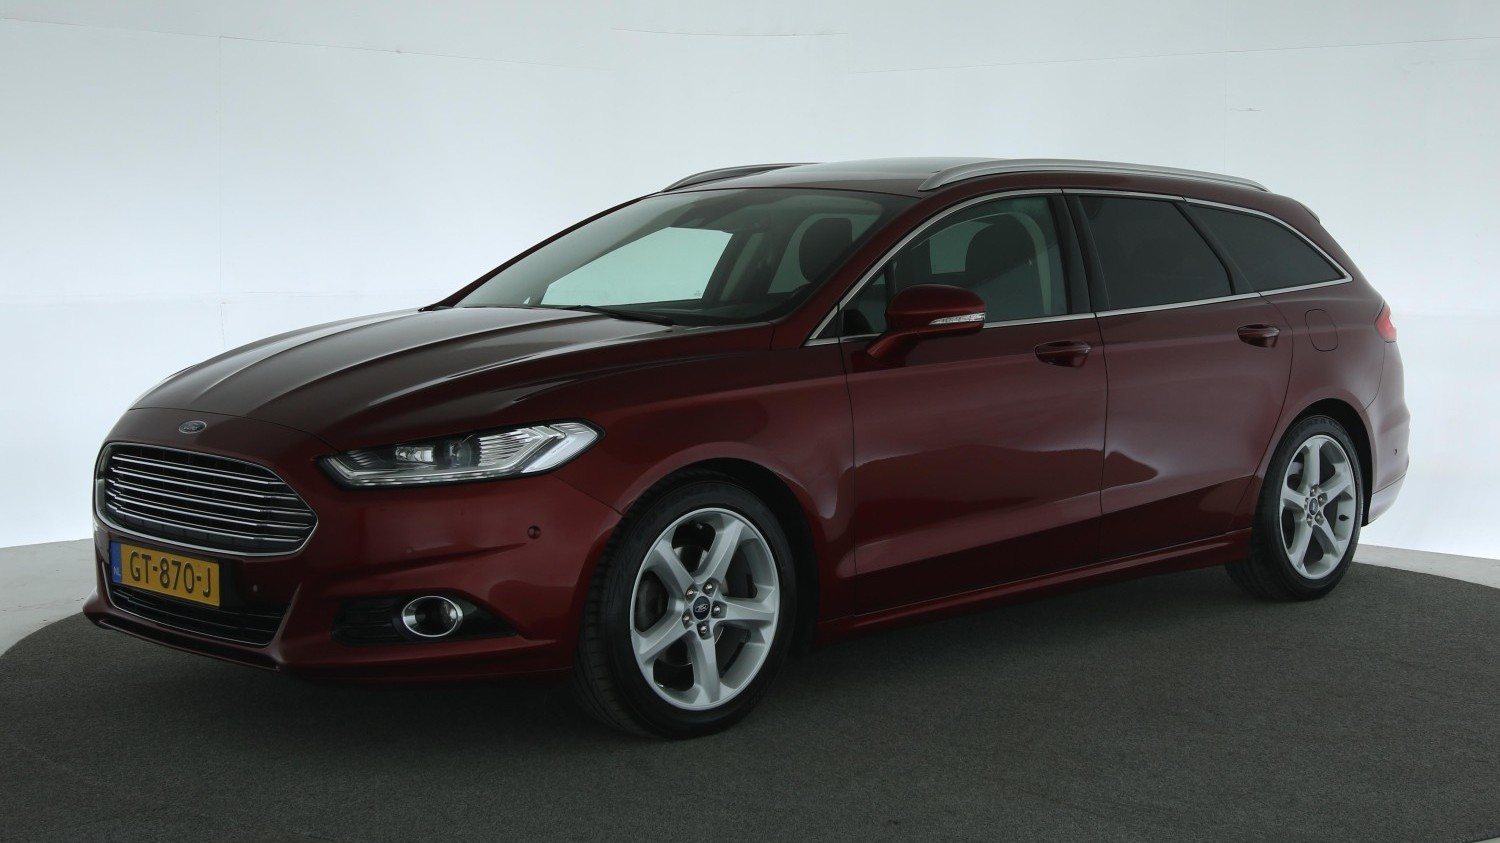 Ford Mondeo Station 2015 GT-870-J 1